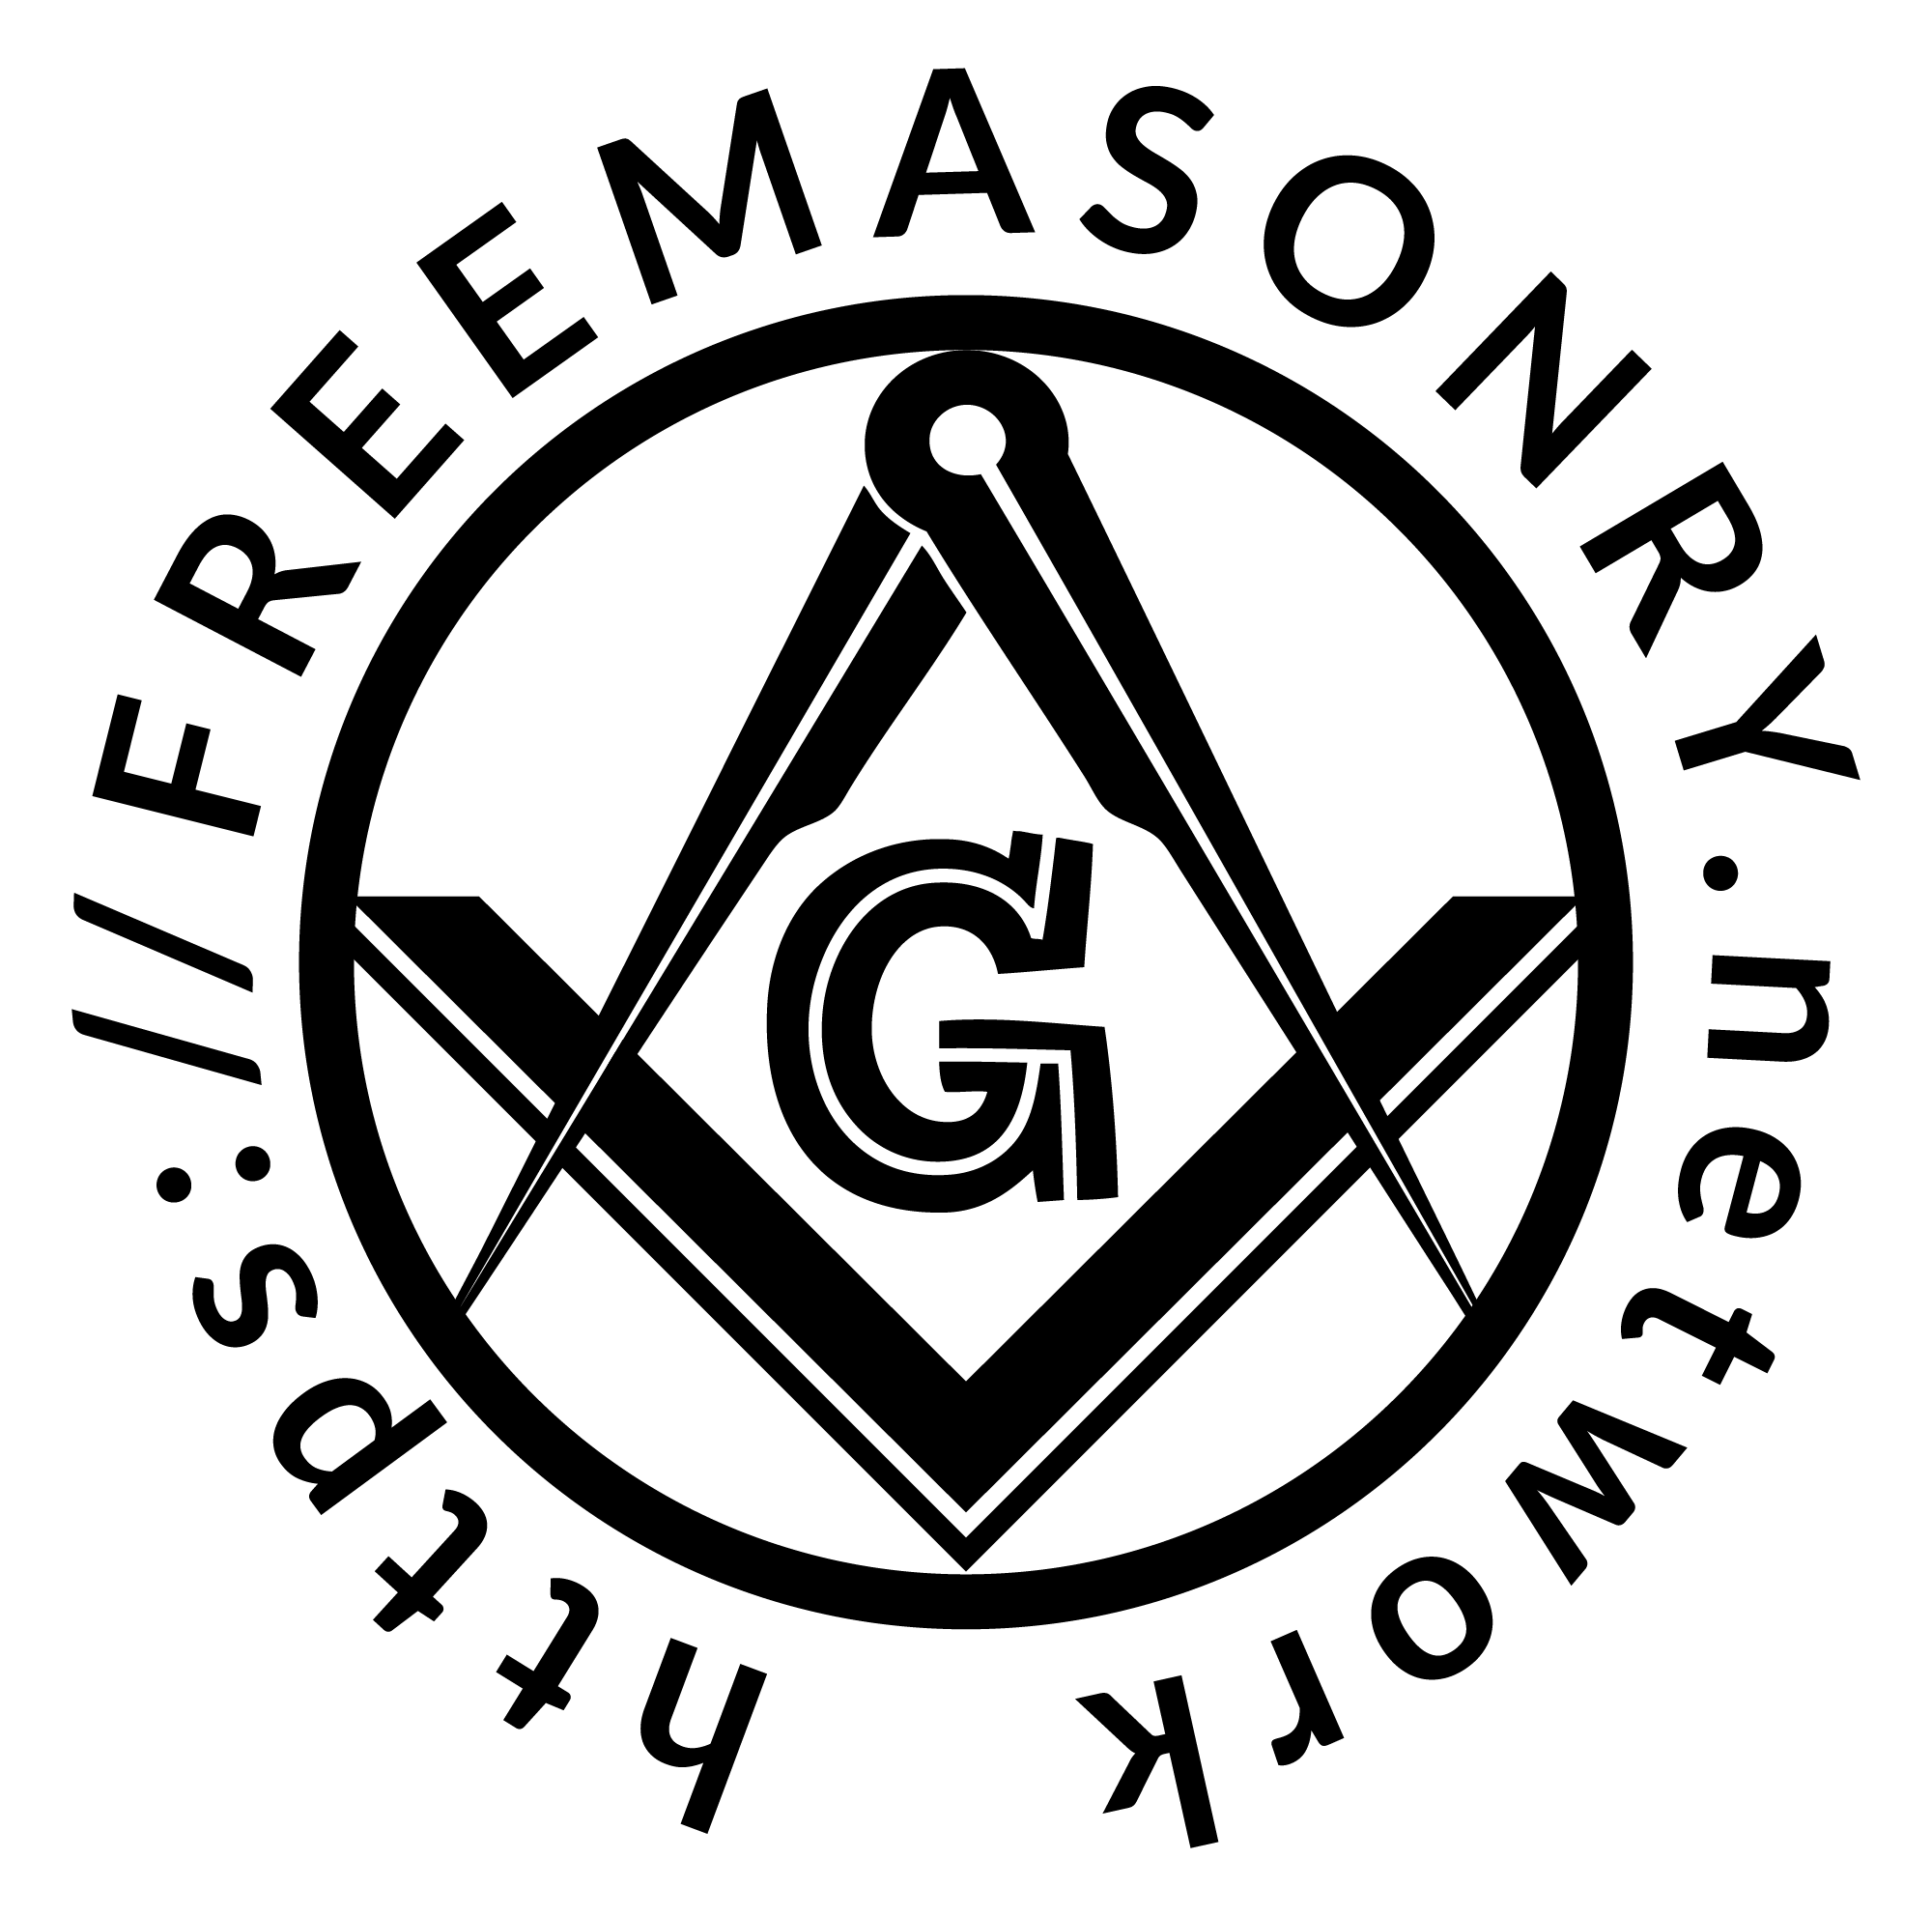 DAVID HARRISON ON FREEMASONRY